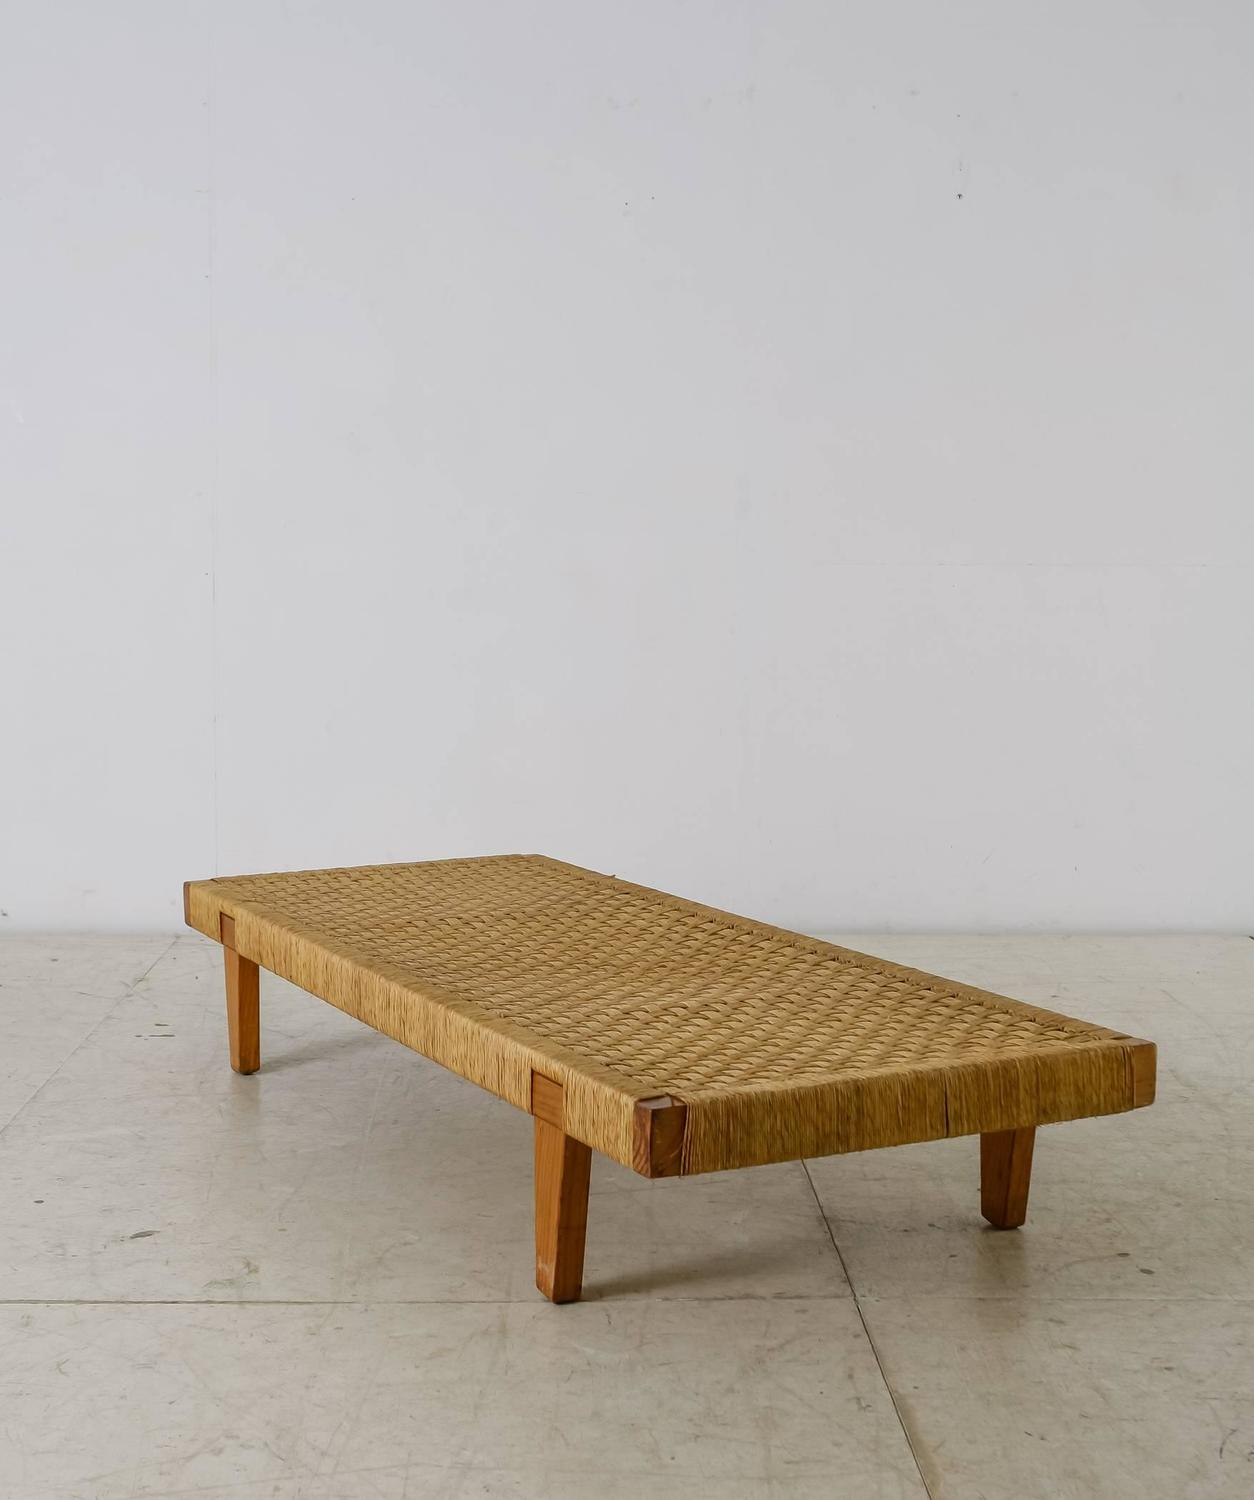 Mexican Wood And Cane Bench Or Daybed 1950s For Sale At